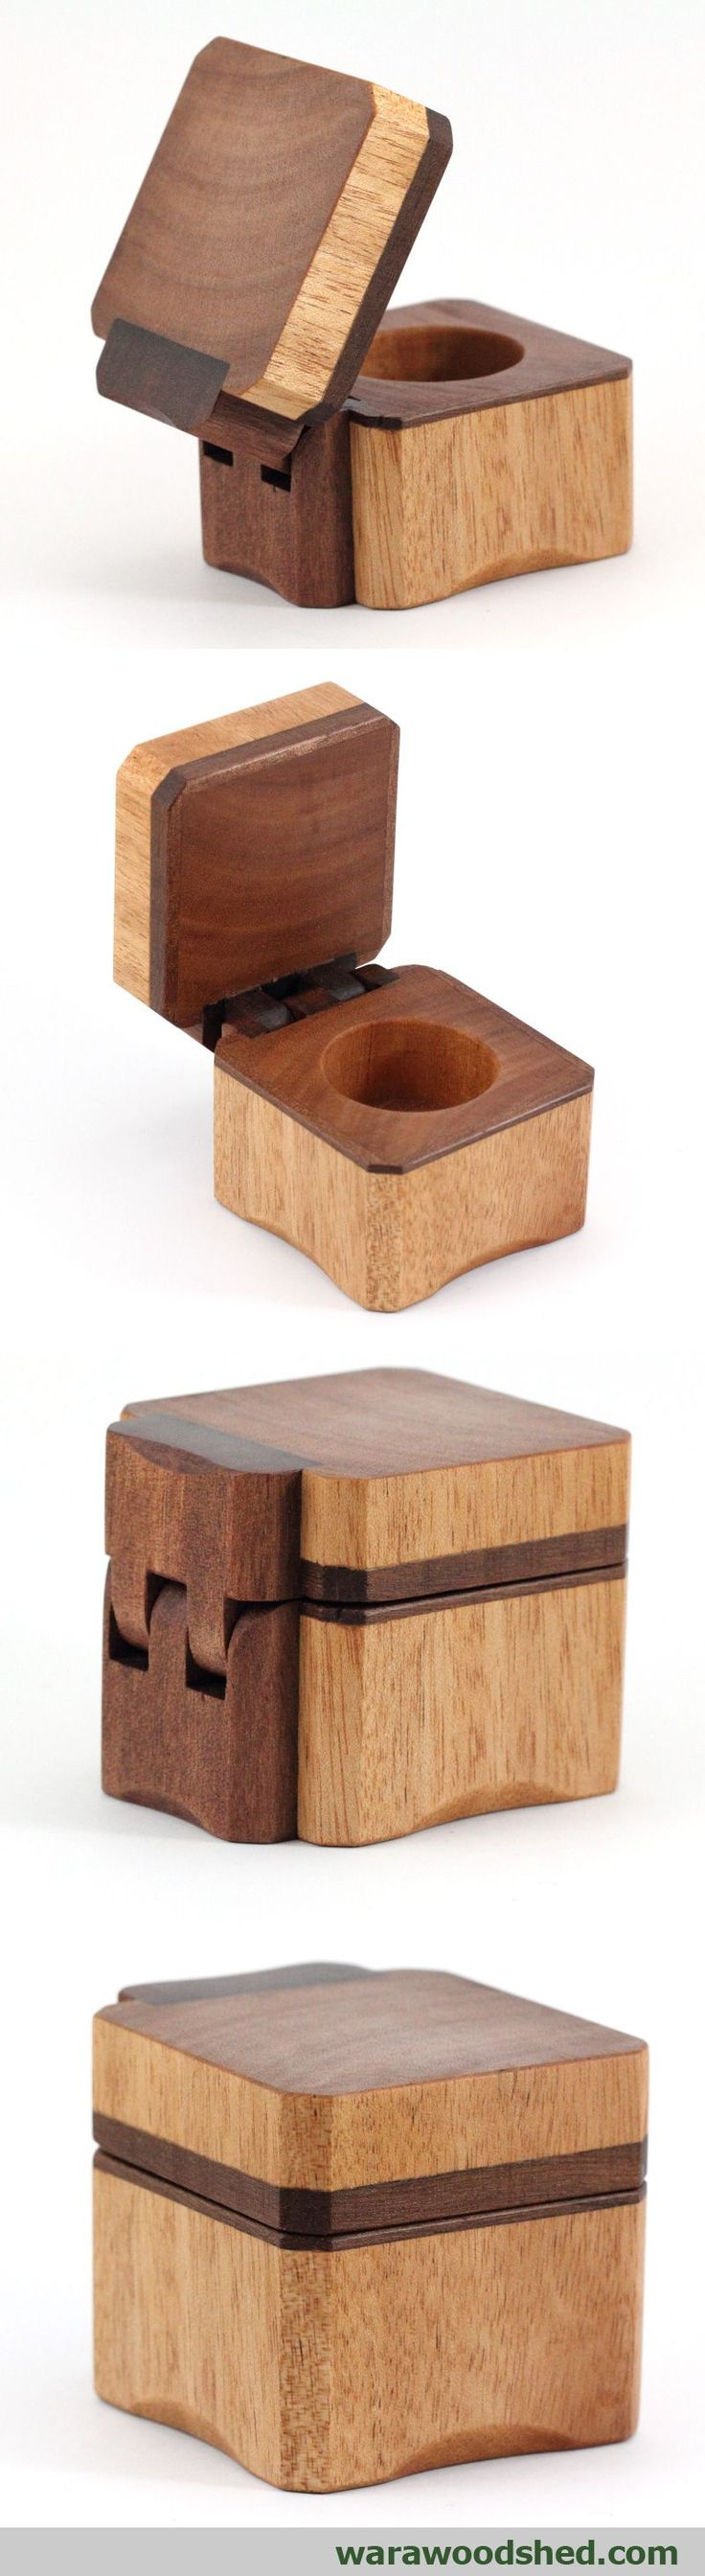 67 best Jewelry boxes images on Pinterest Wood projects Jewel box